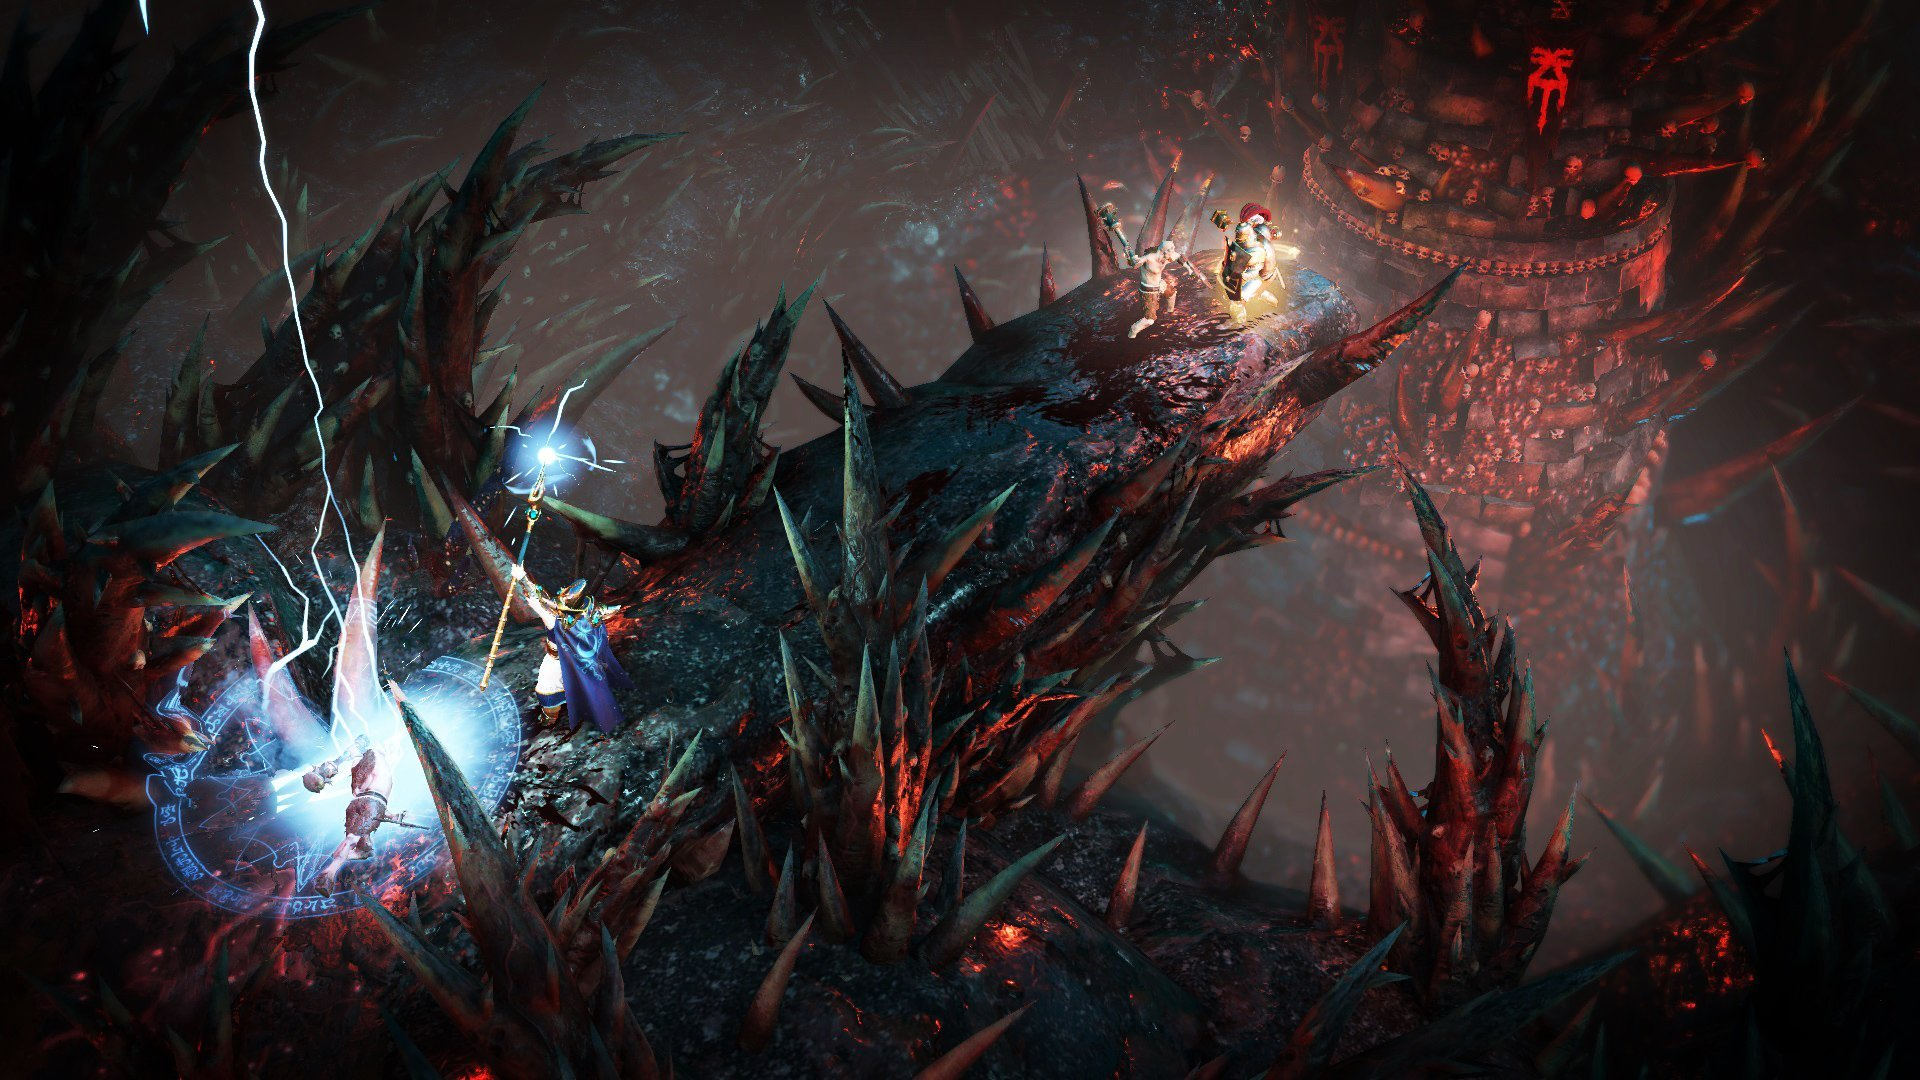 Warhammer: Chaosbane Review: A Hack-and-Slash Adventure Without Purpose